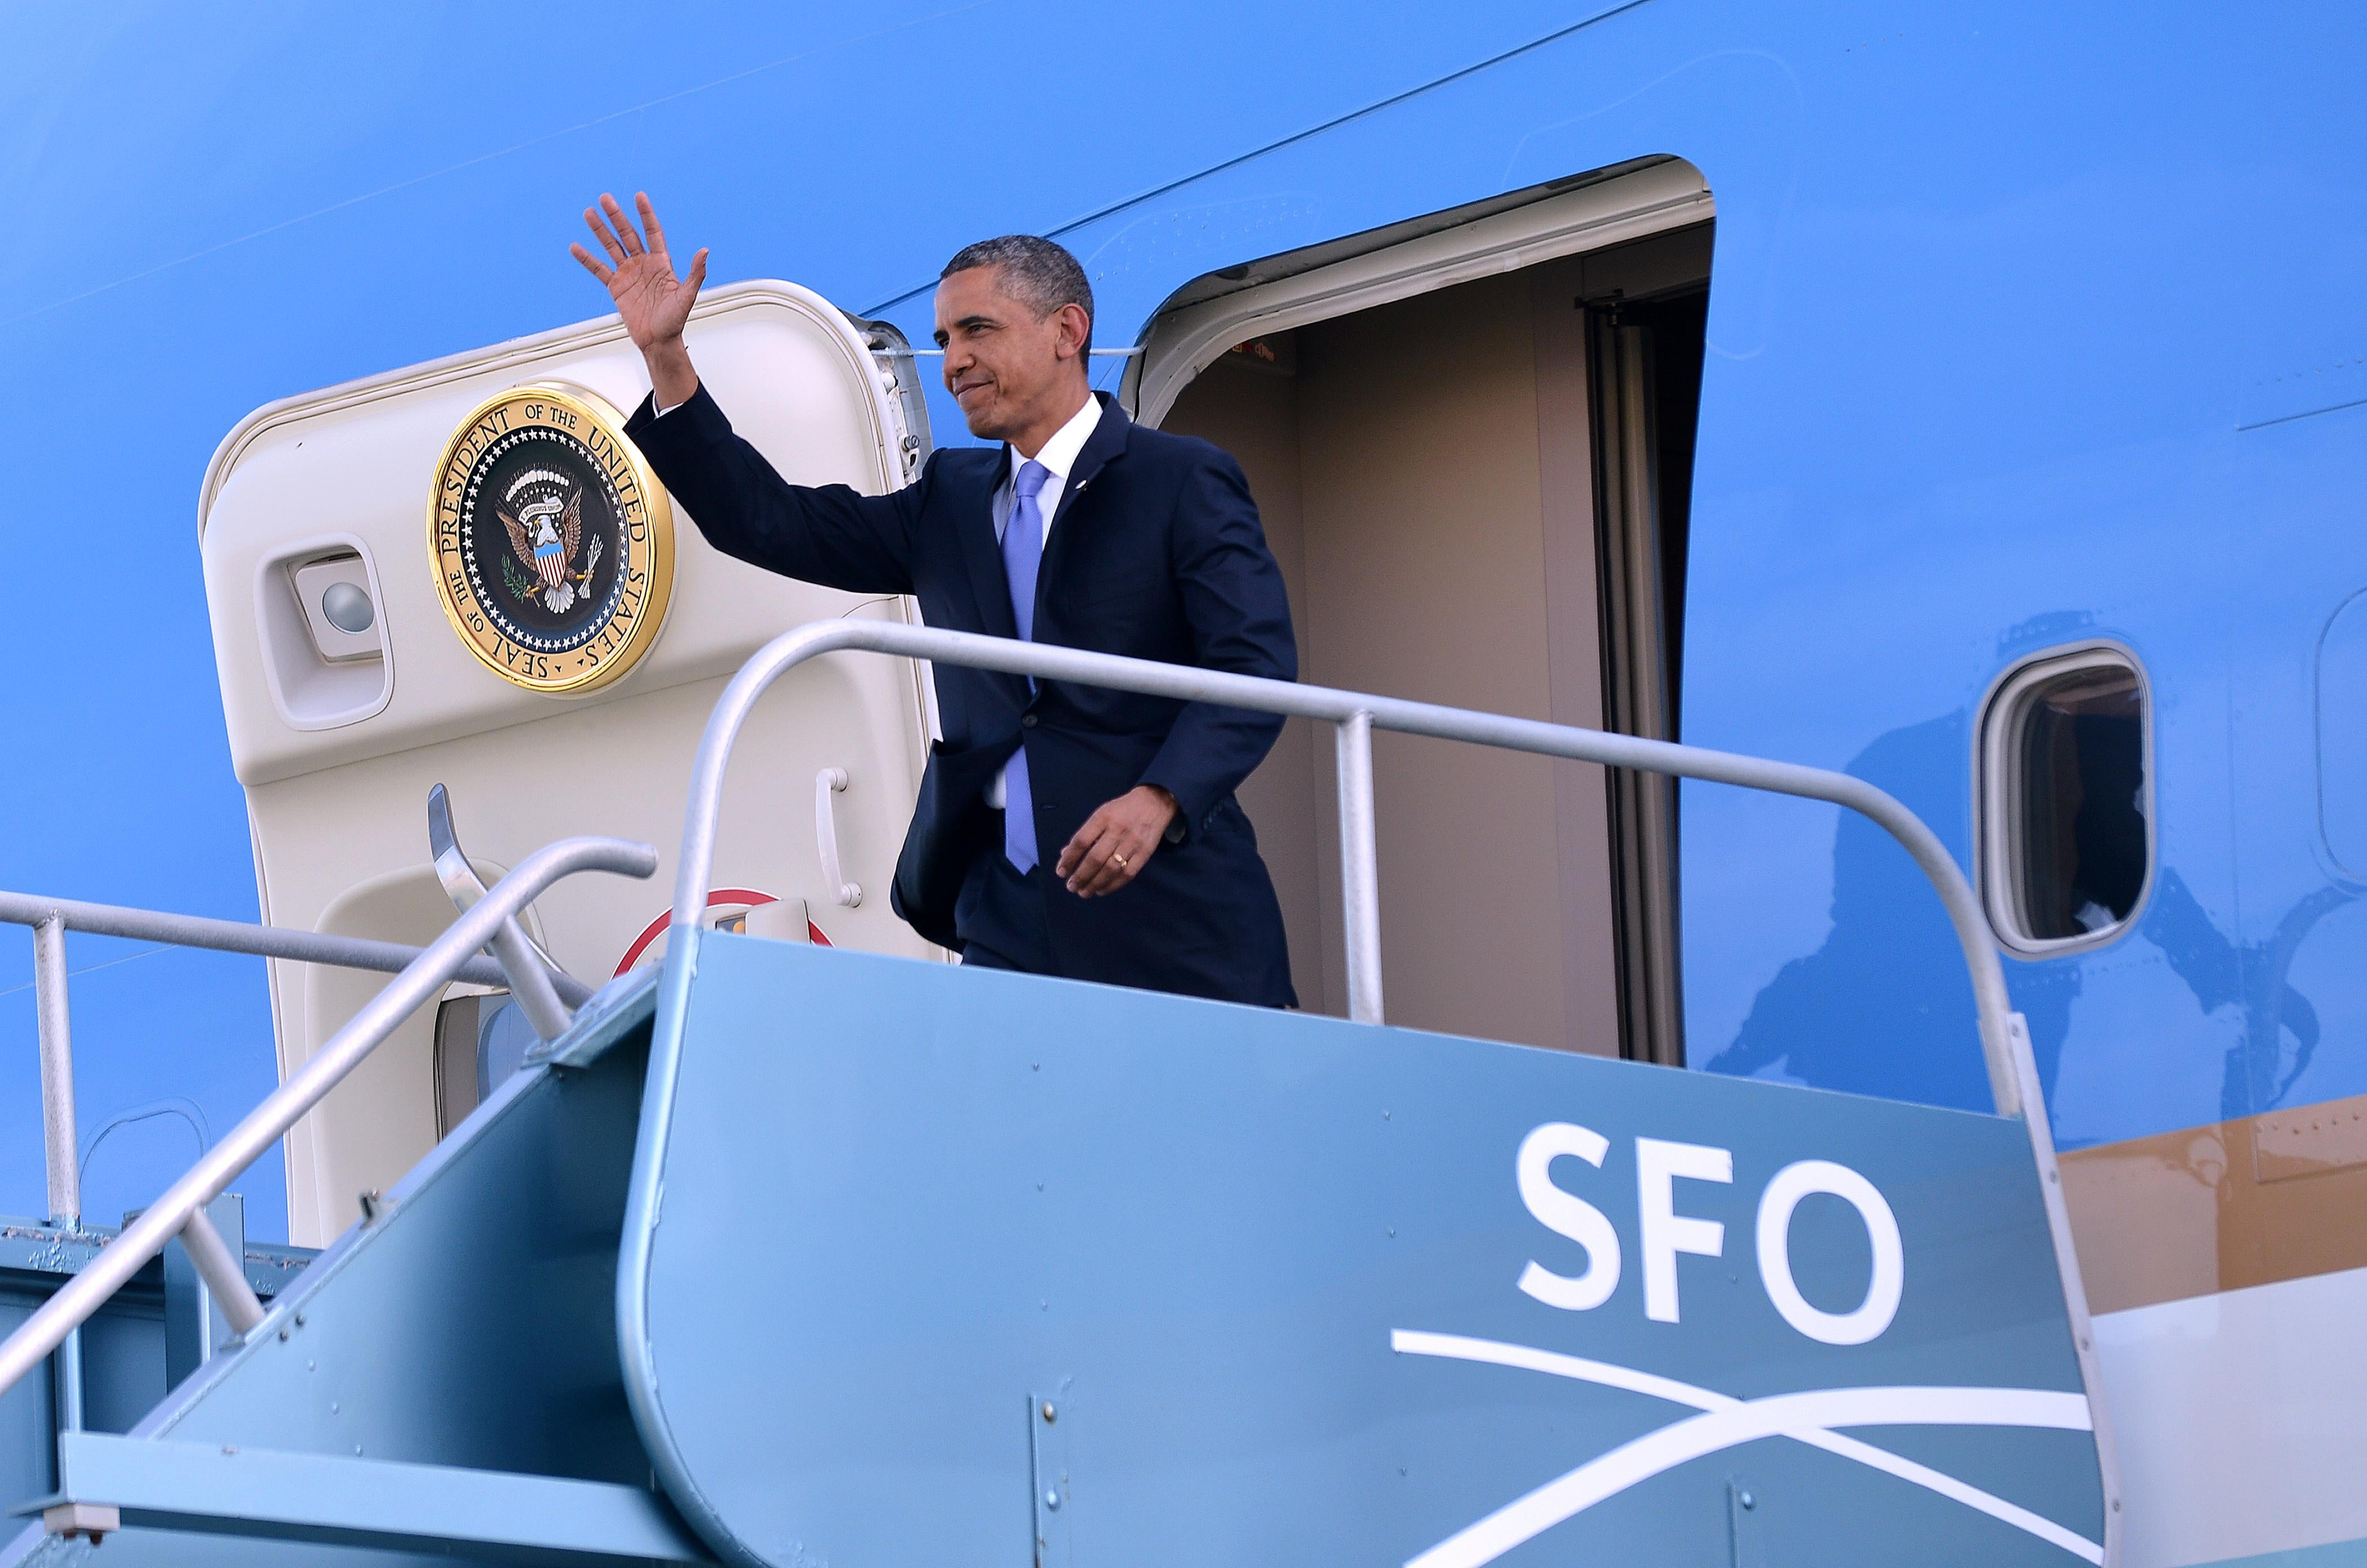 President Barack Obama disembarks from Air Force One at San Francisco International Airport, April 3, 2013.